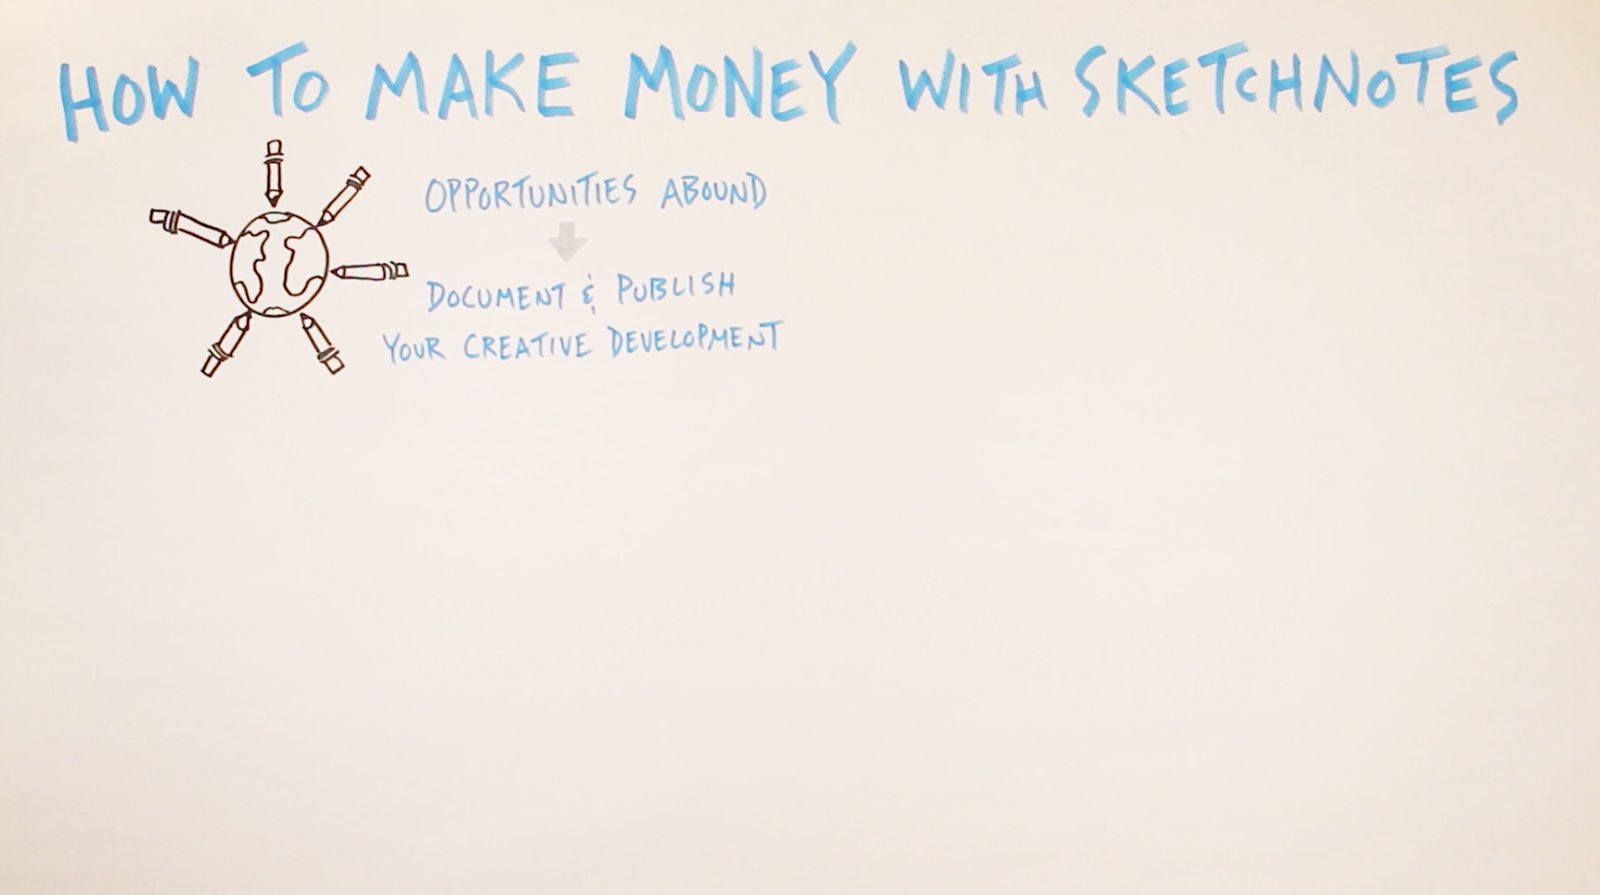 Make money with sketchnotes: opportunities Abound